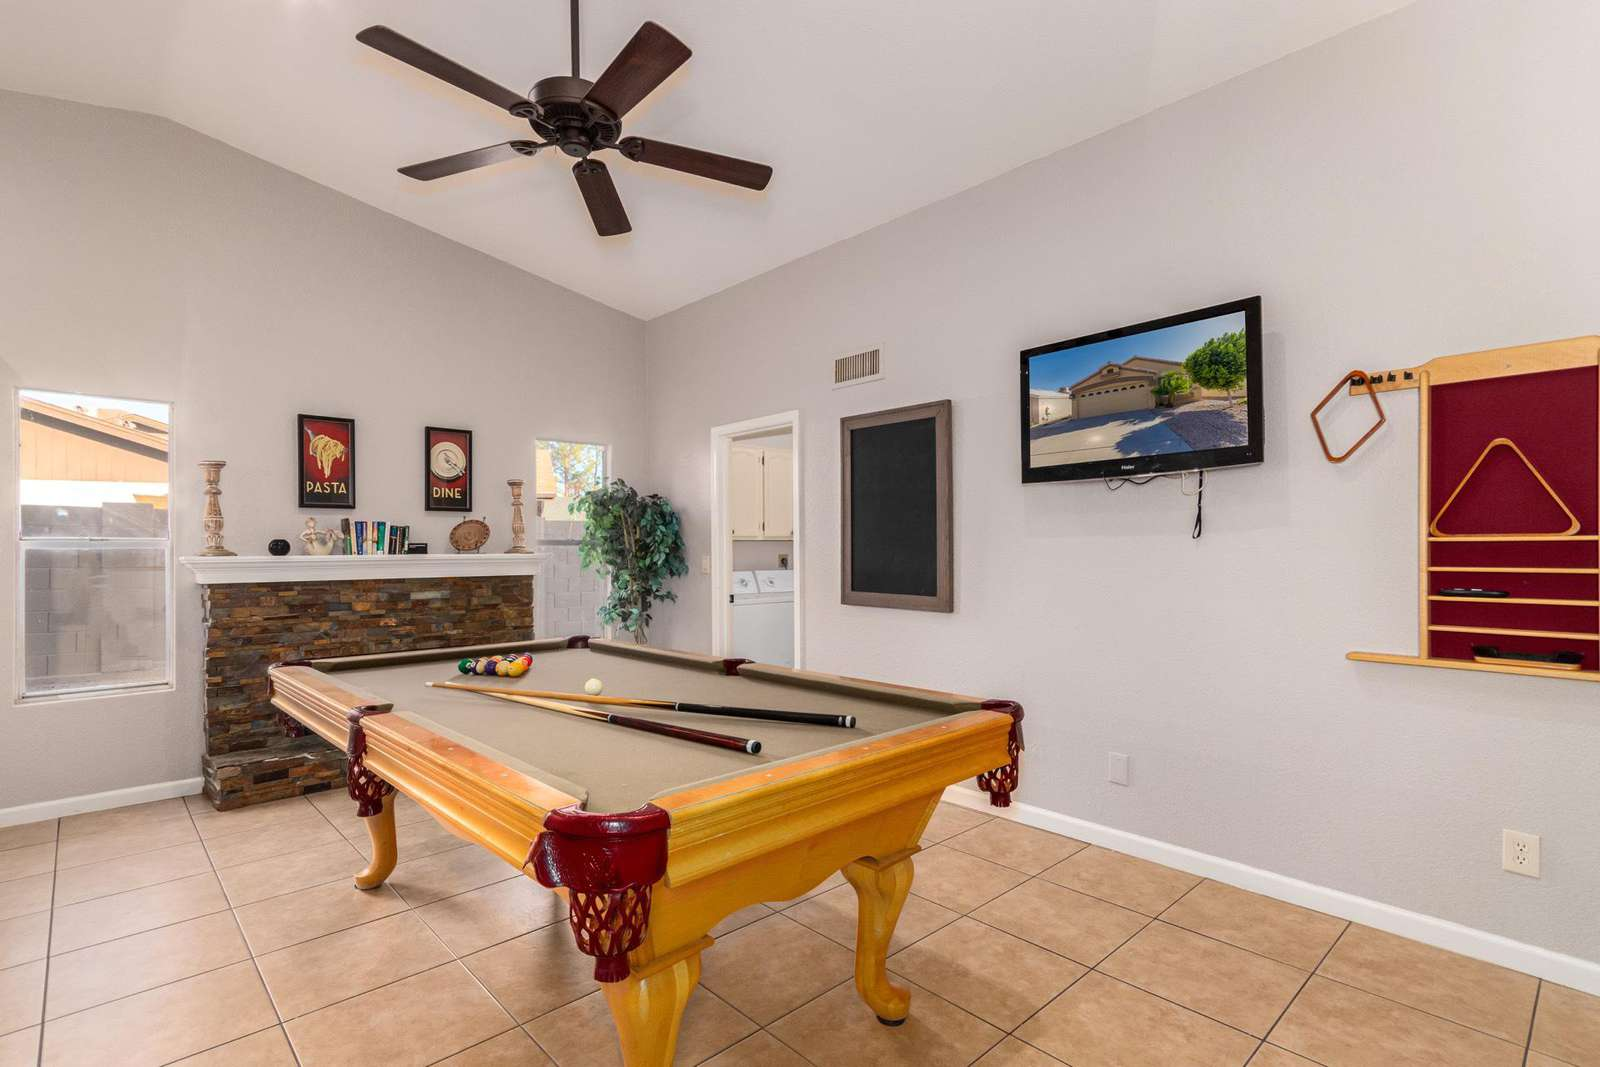 Family Room With Pool Table / TV